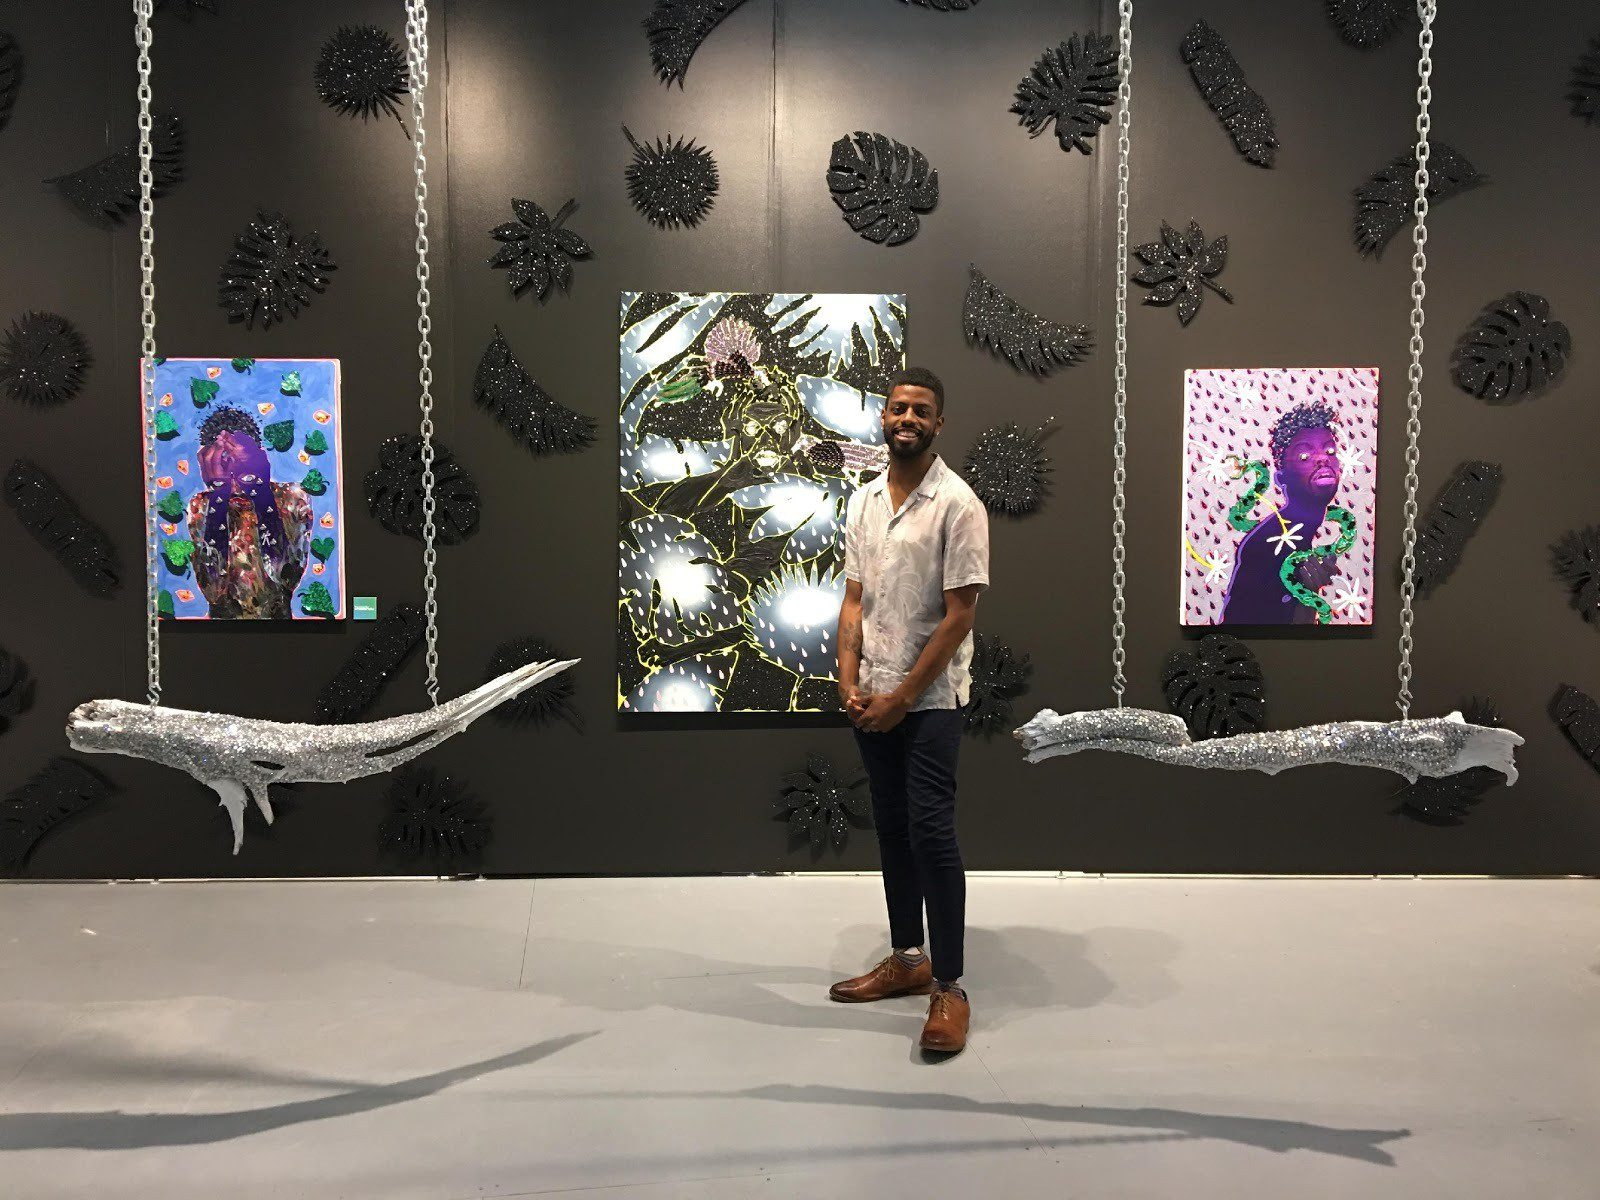 Devan Shimoyama, Cry Baby, The Andy Warhol Museum. Image courtesy of the museum.